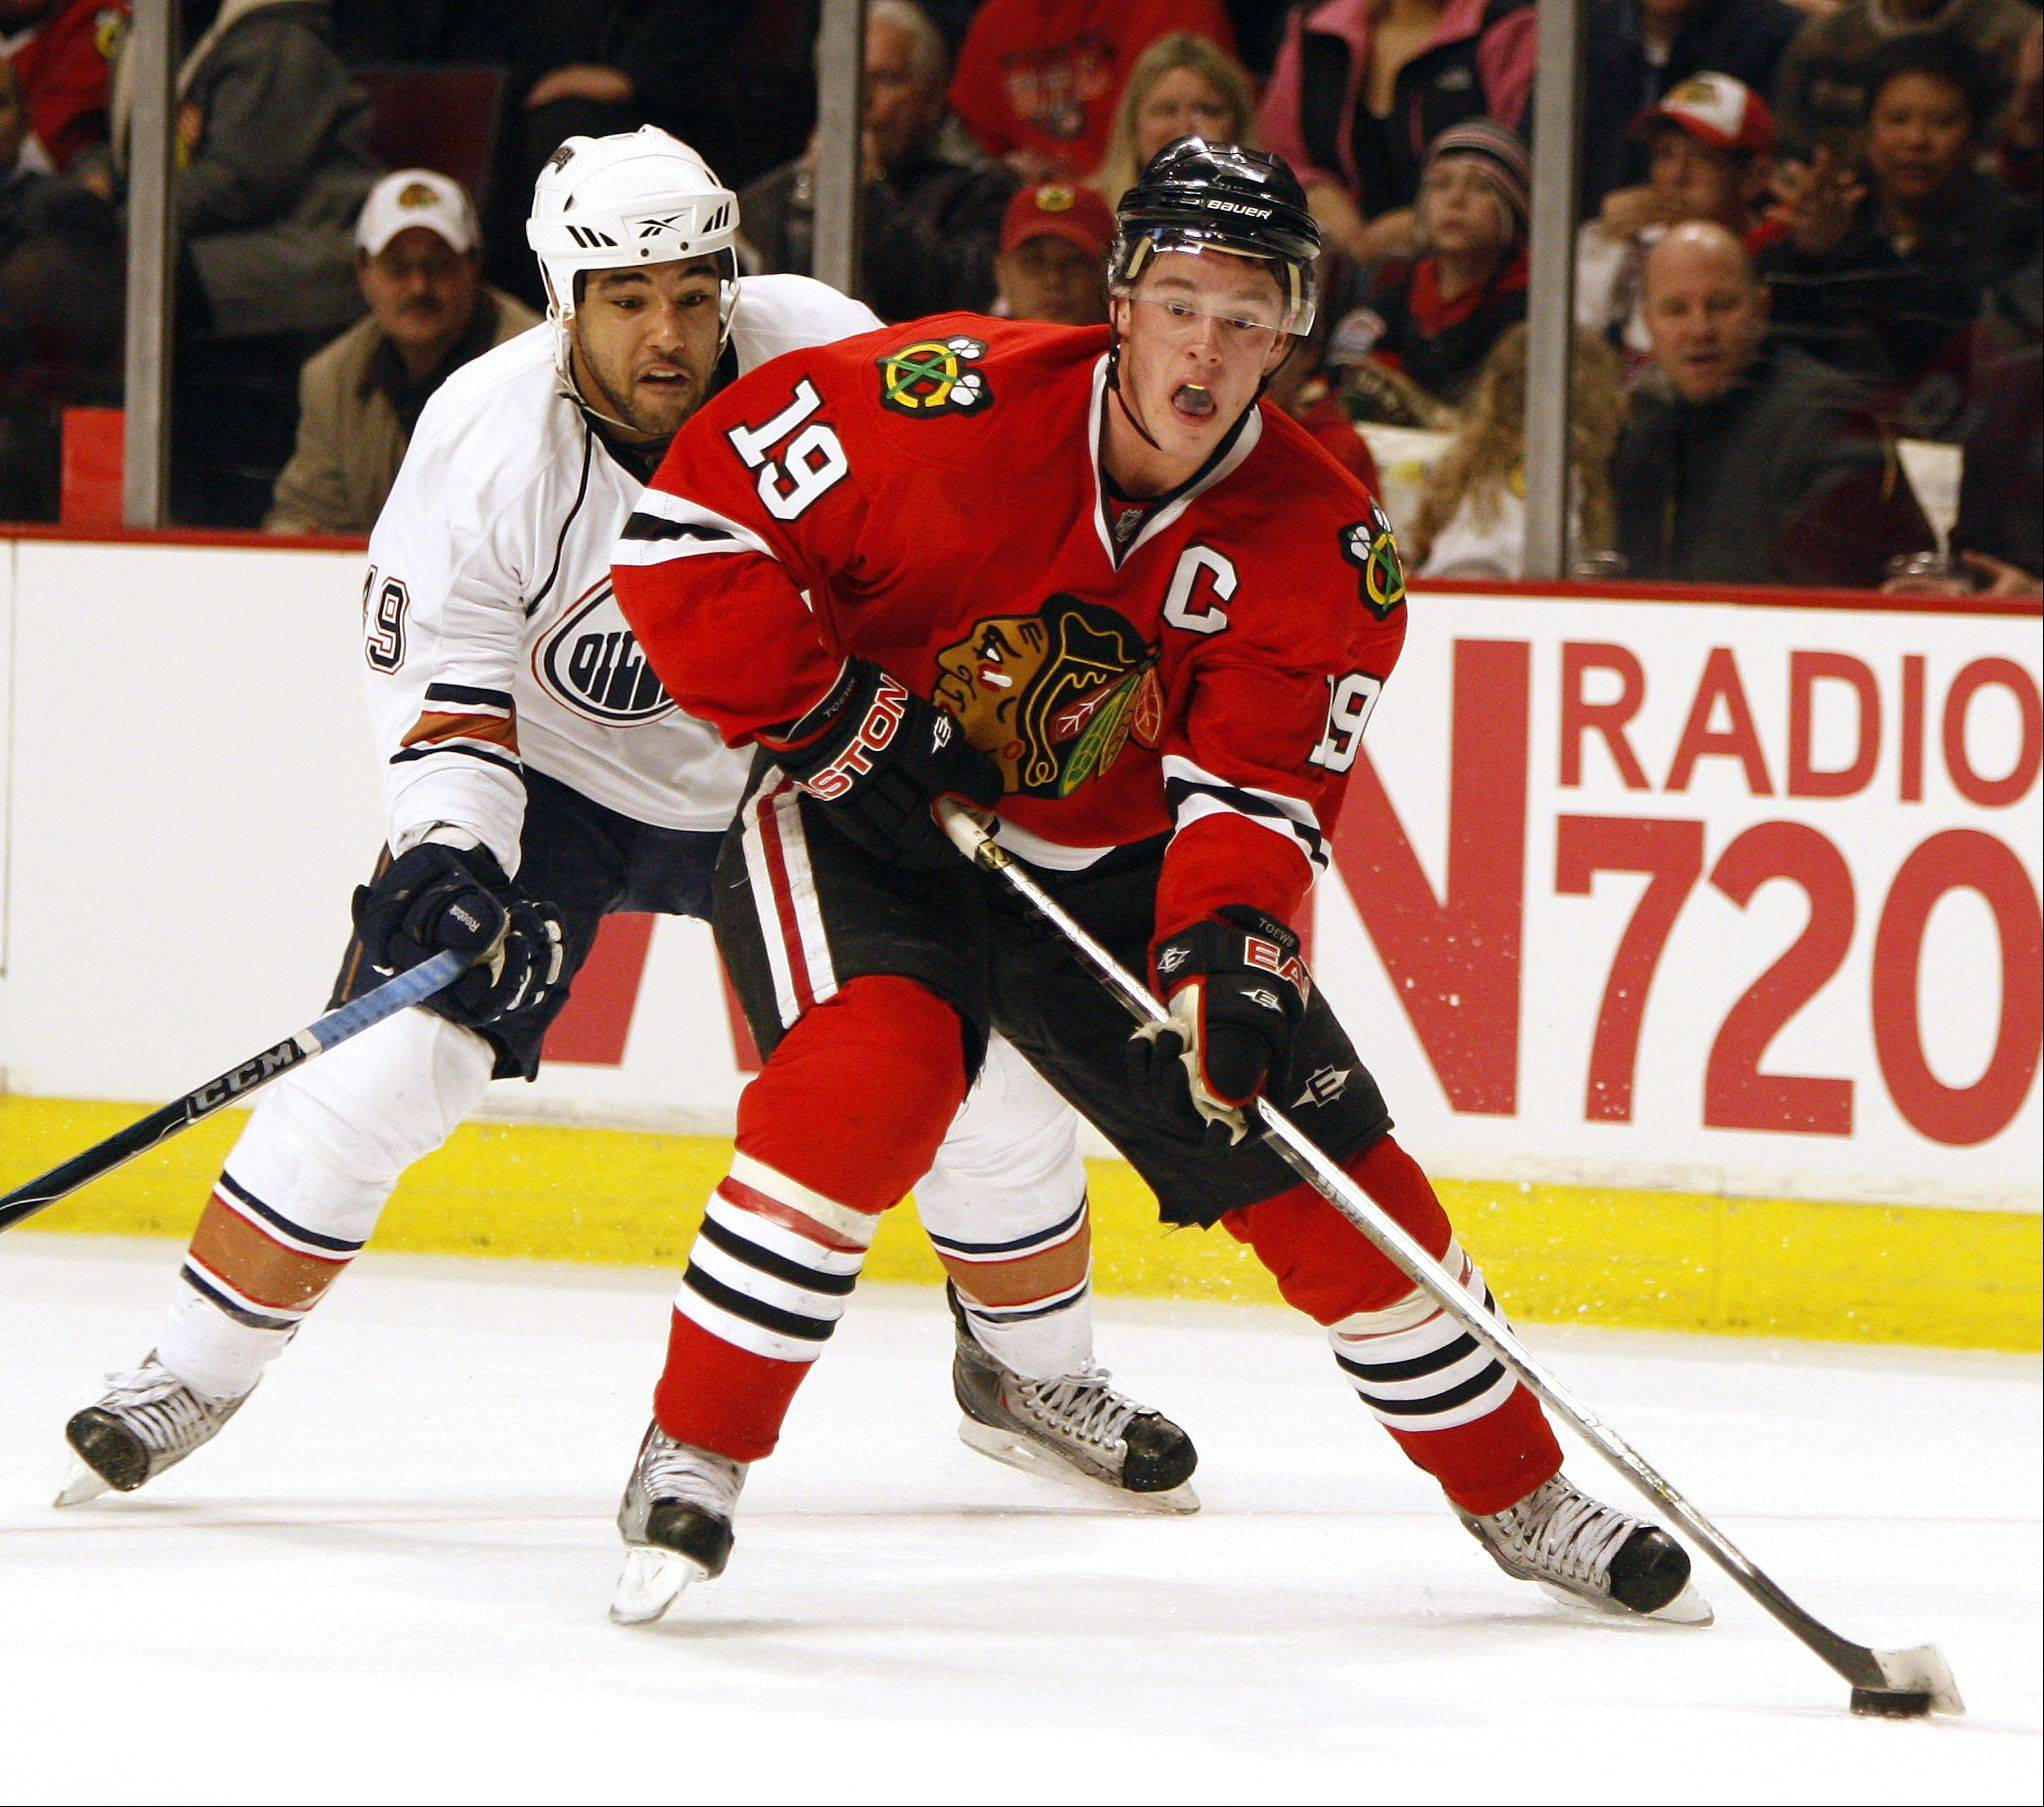 Blackhawks captain Jonathan Toews was a vocal critic of the NHL during the lengthy lockout. On Sunday, Toews said, �All that is behind us now. I would rather talk about hockey and the great things that are going to happen this season.�